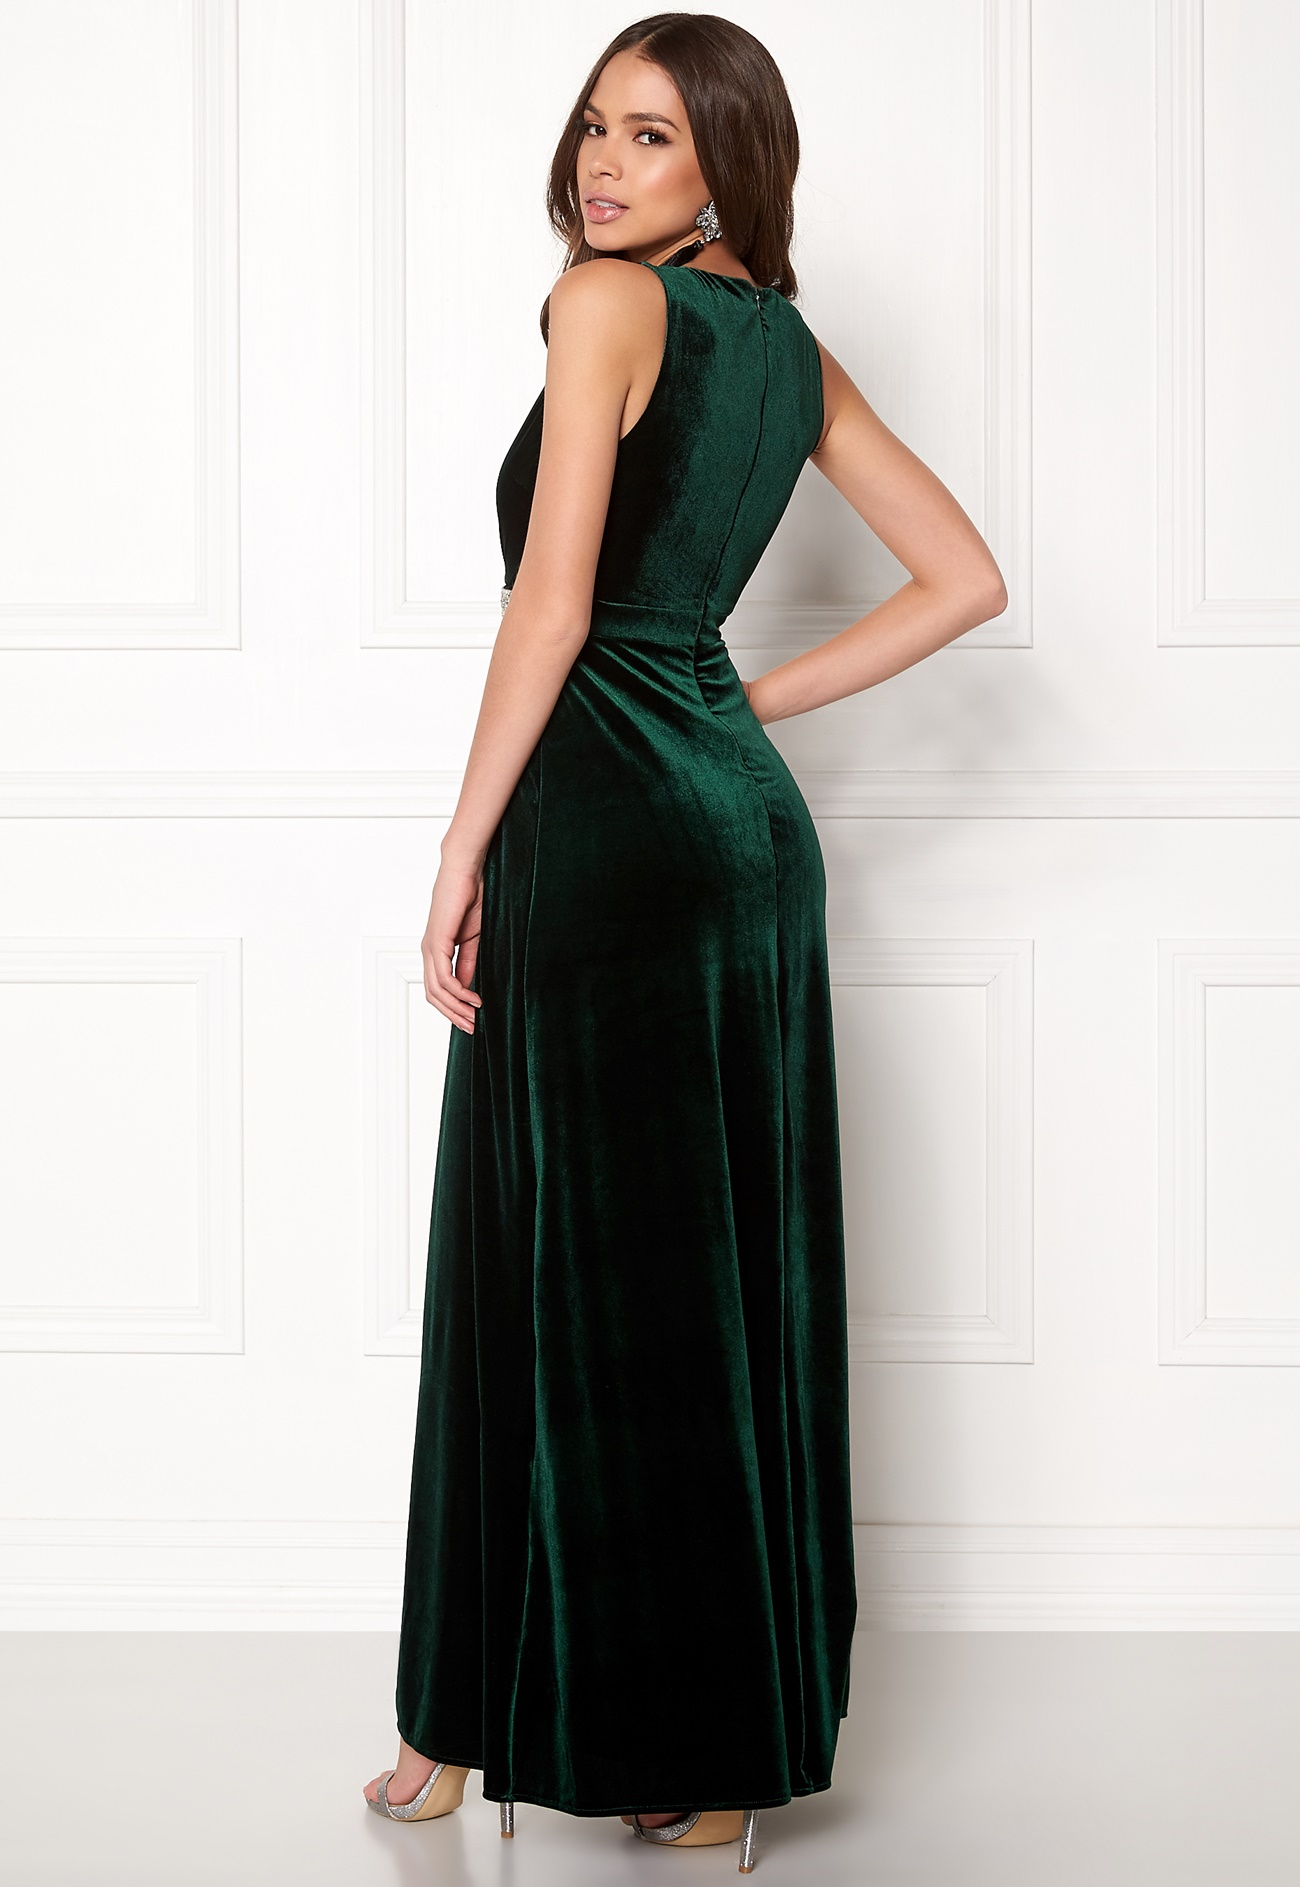 liveblog.ga offers Deep Green Dresses at cheap prices, so you can shop from a huge selection of Deep Green Dresses, FREE Shipping available worldwide.